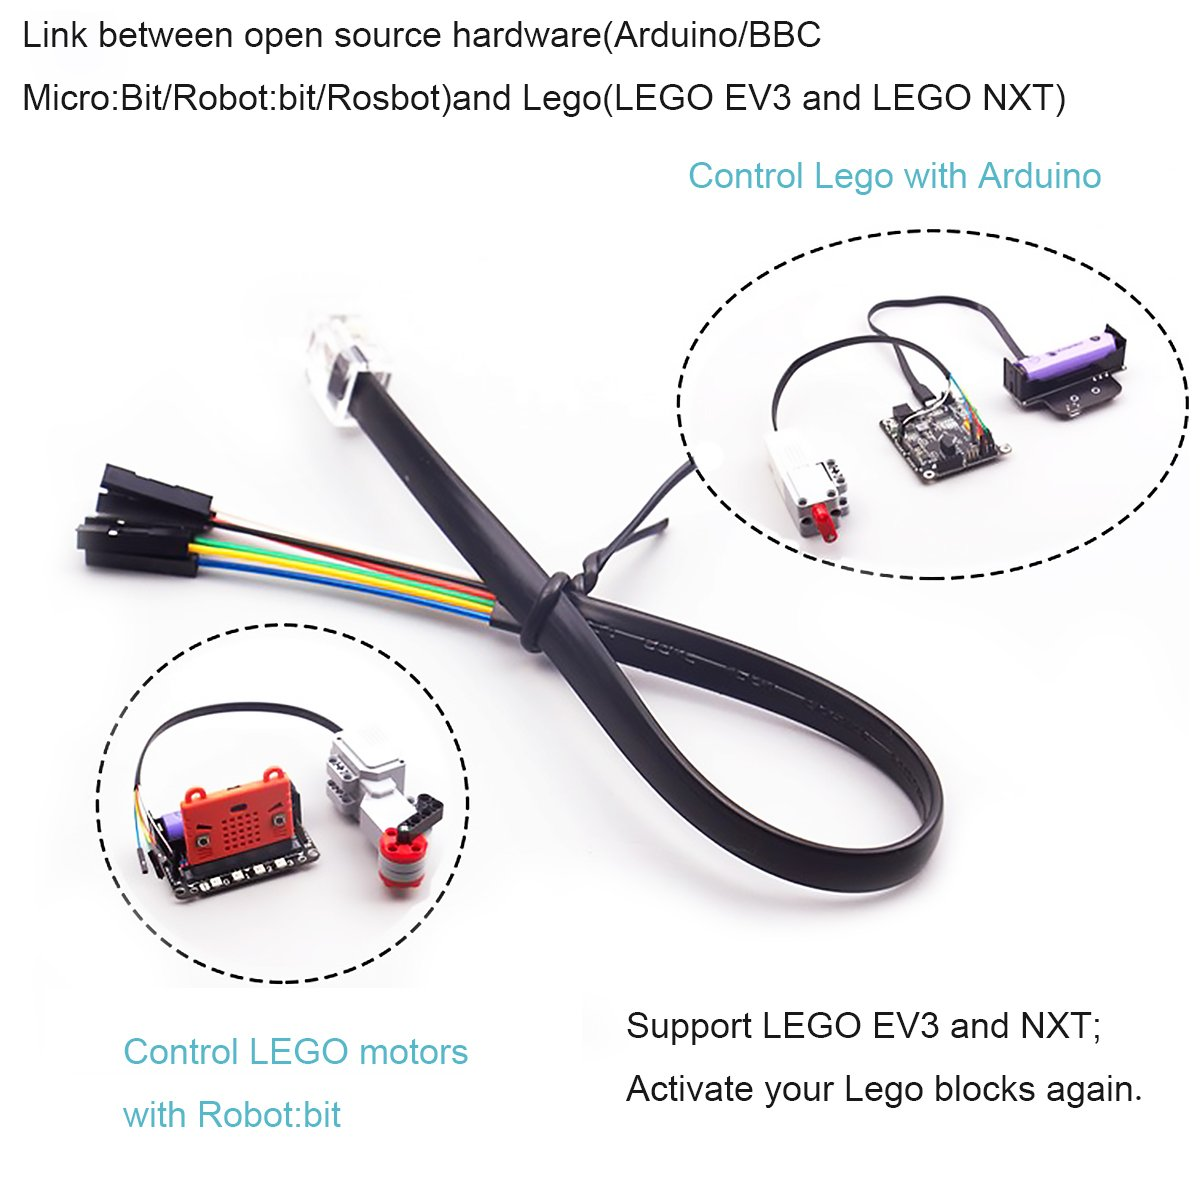 le-go Wire, Le-go Extension Wire Bit with Le-go EV3//NXT MakerFocus 5pcs Le-go Cable Dupont Wire 6 Pins Jumper Wire Female to Crystal 6P6C Connector 25cm for Connecting Arduino//BBC Micro